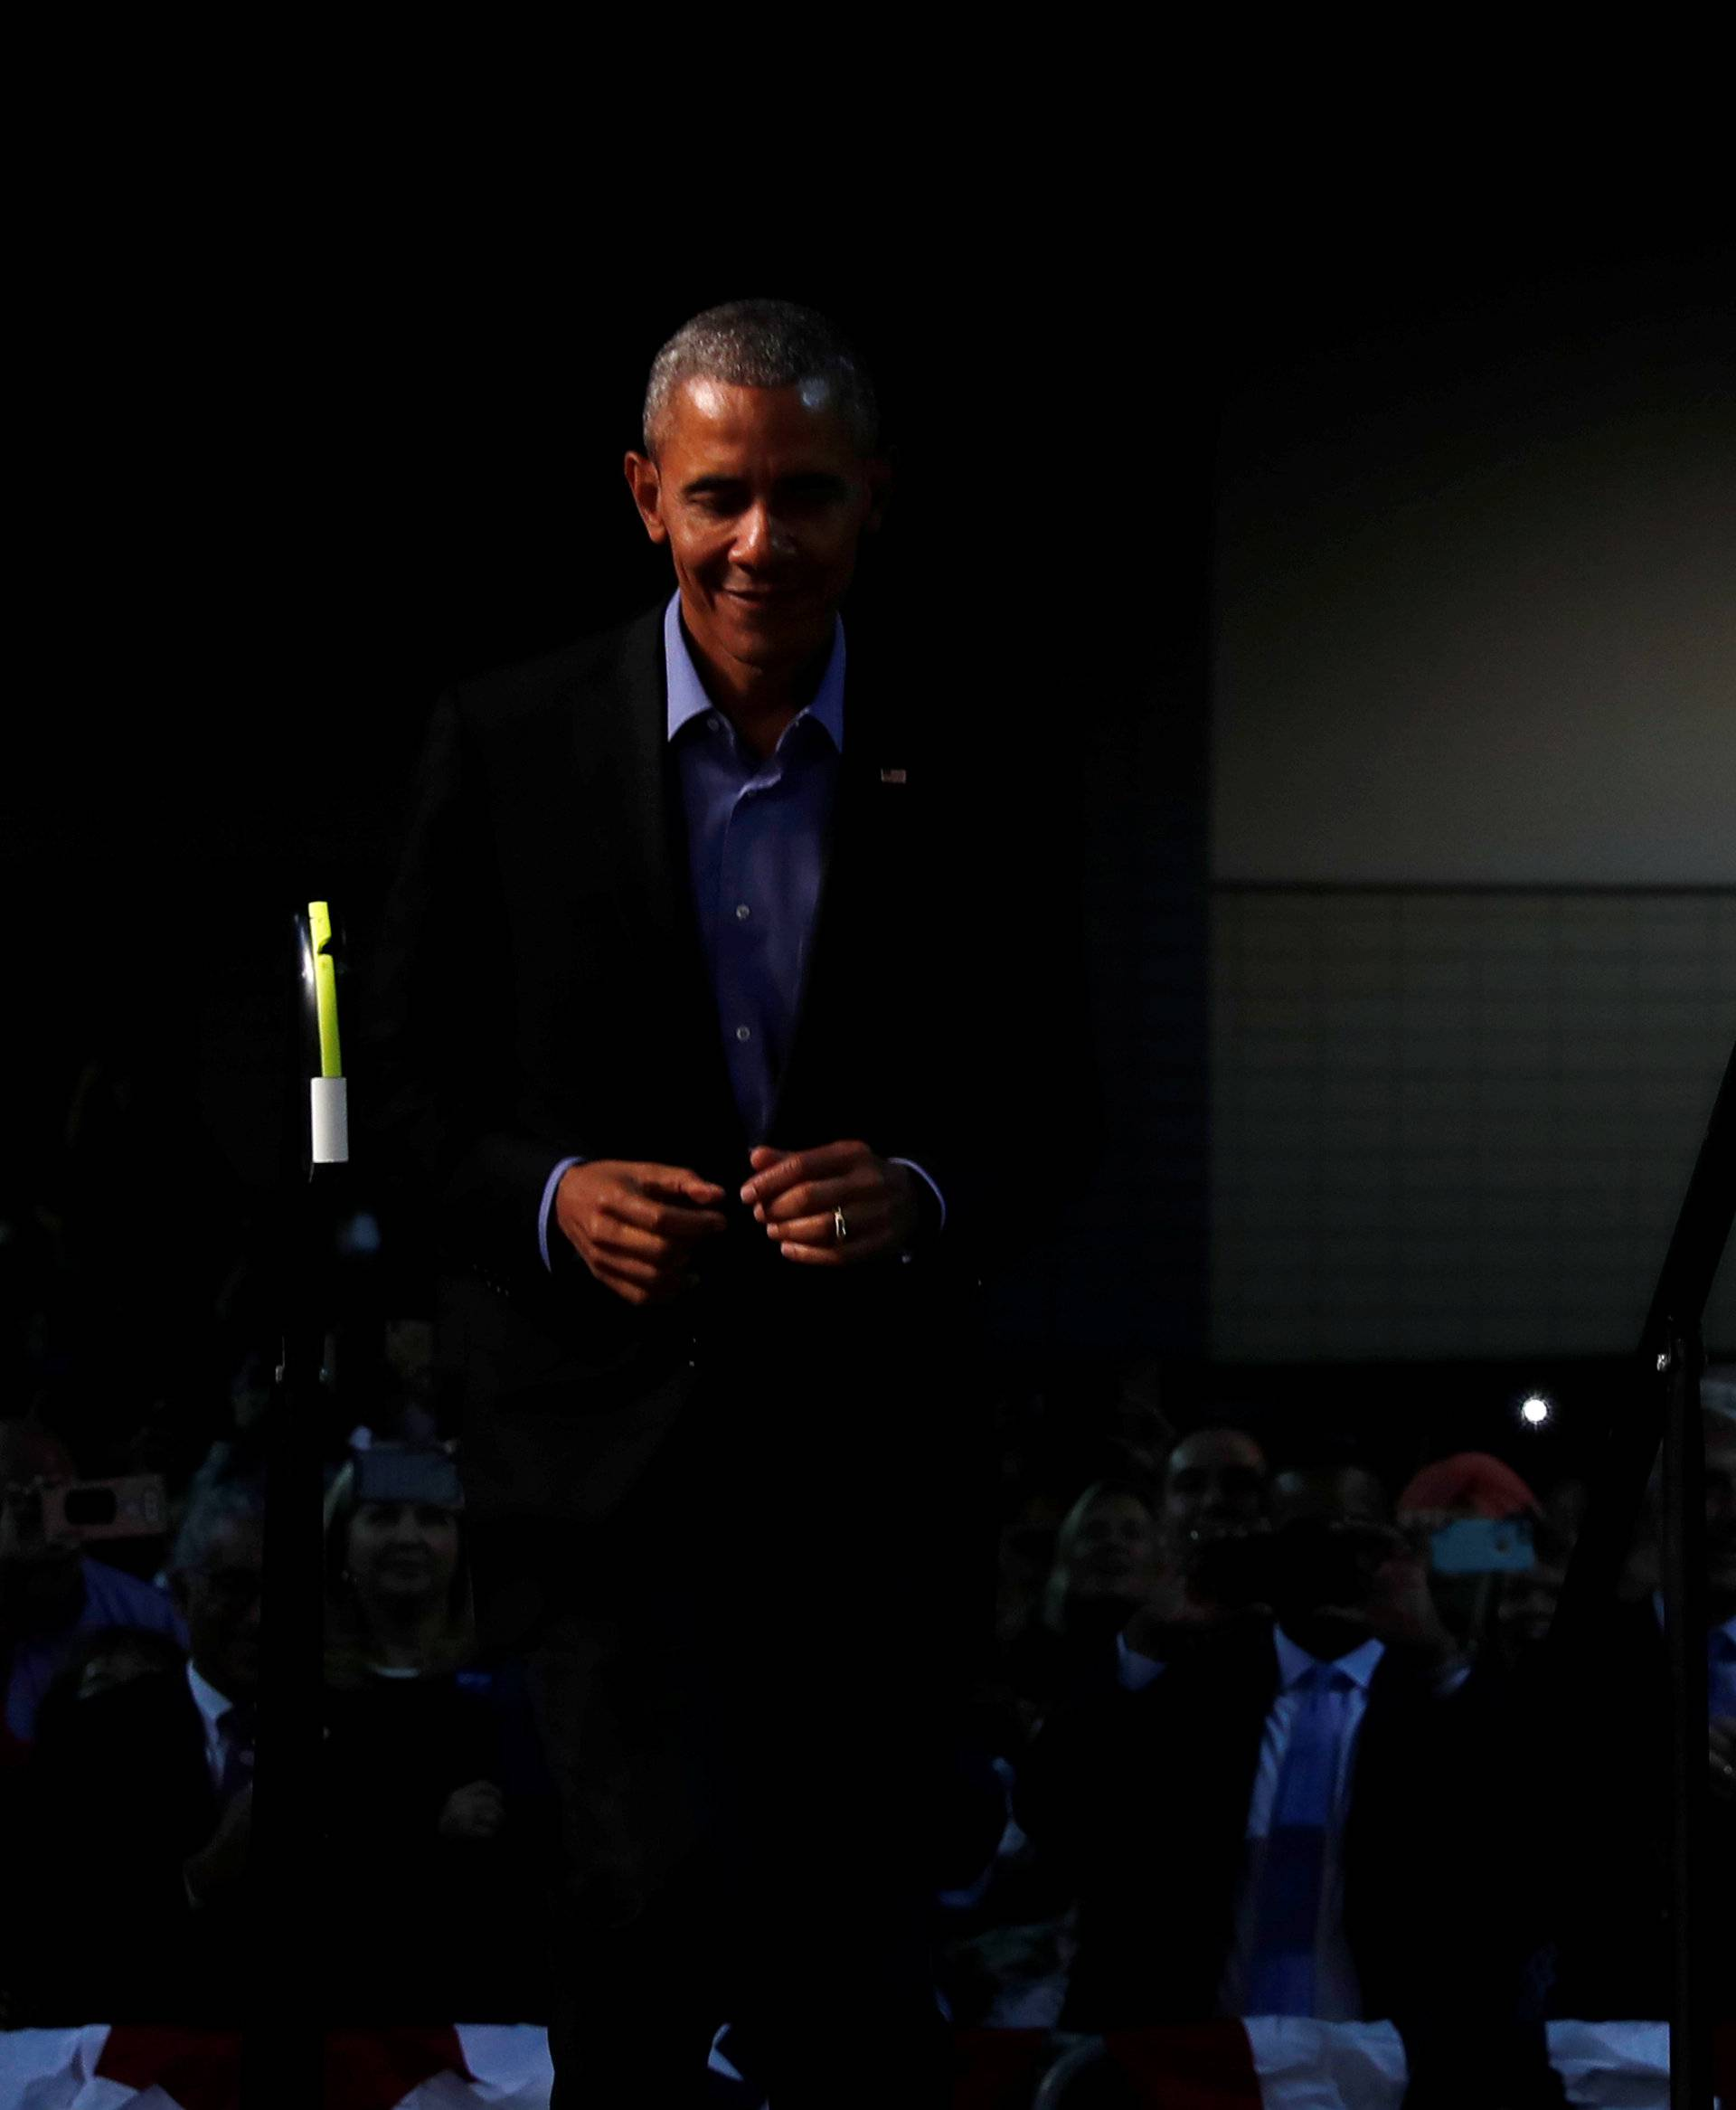 Obama campaigns in support of Northam at a rally with supporters in Richmond, Virginia